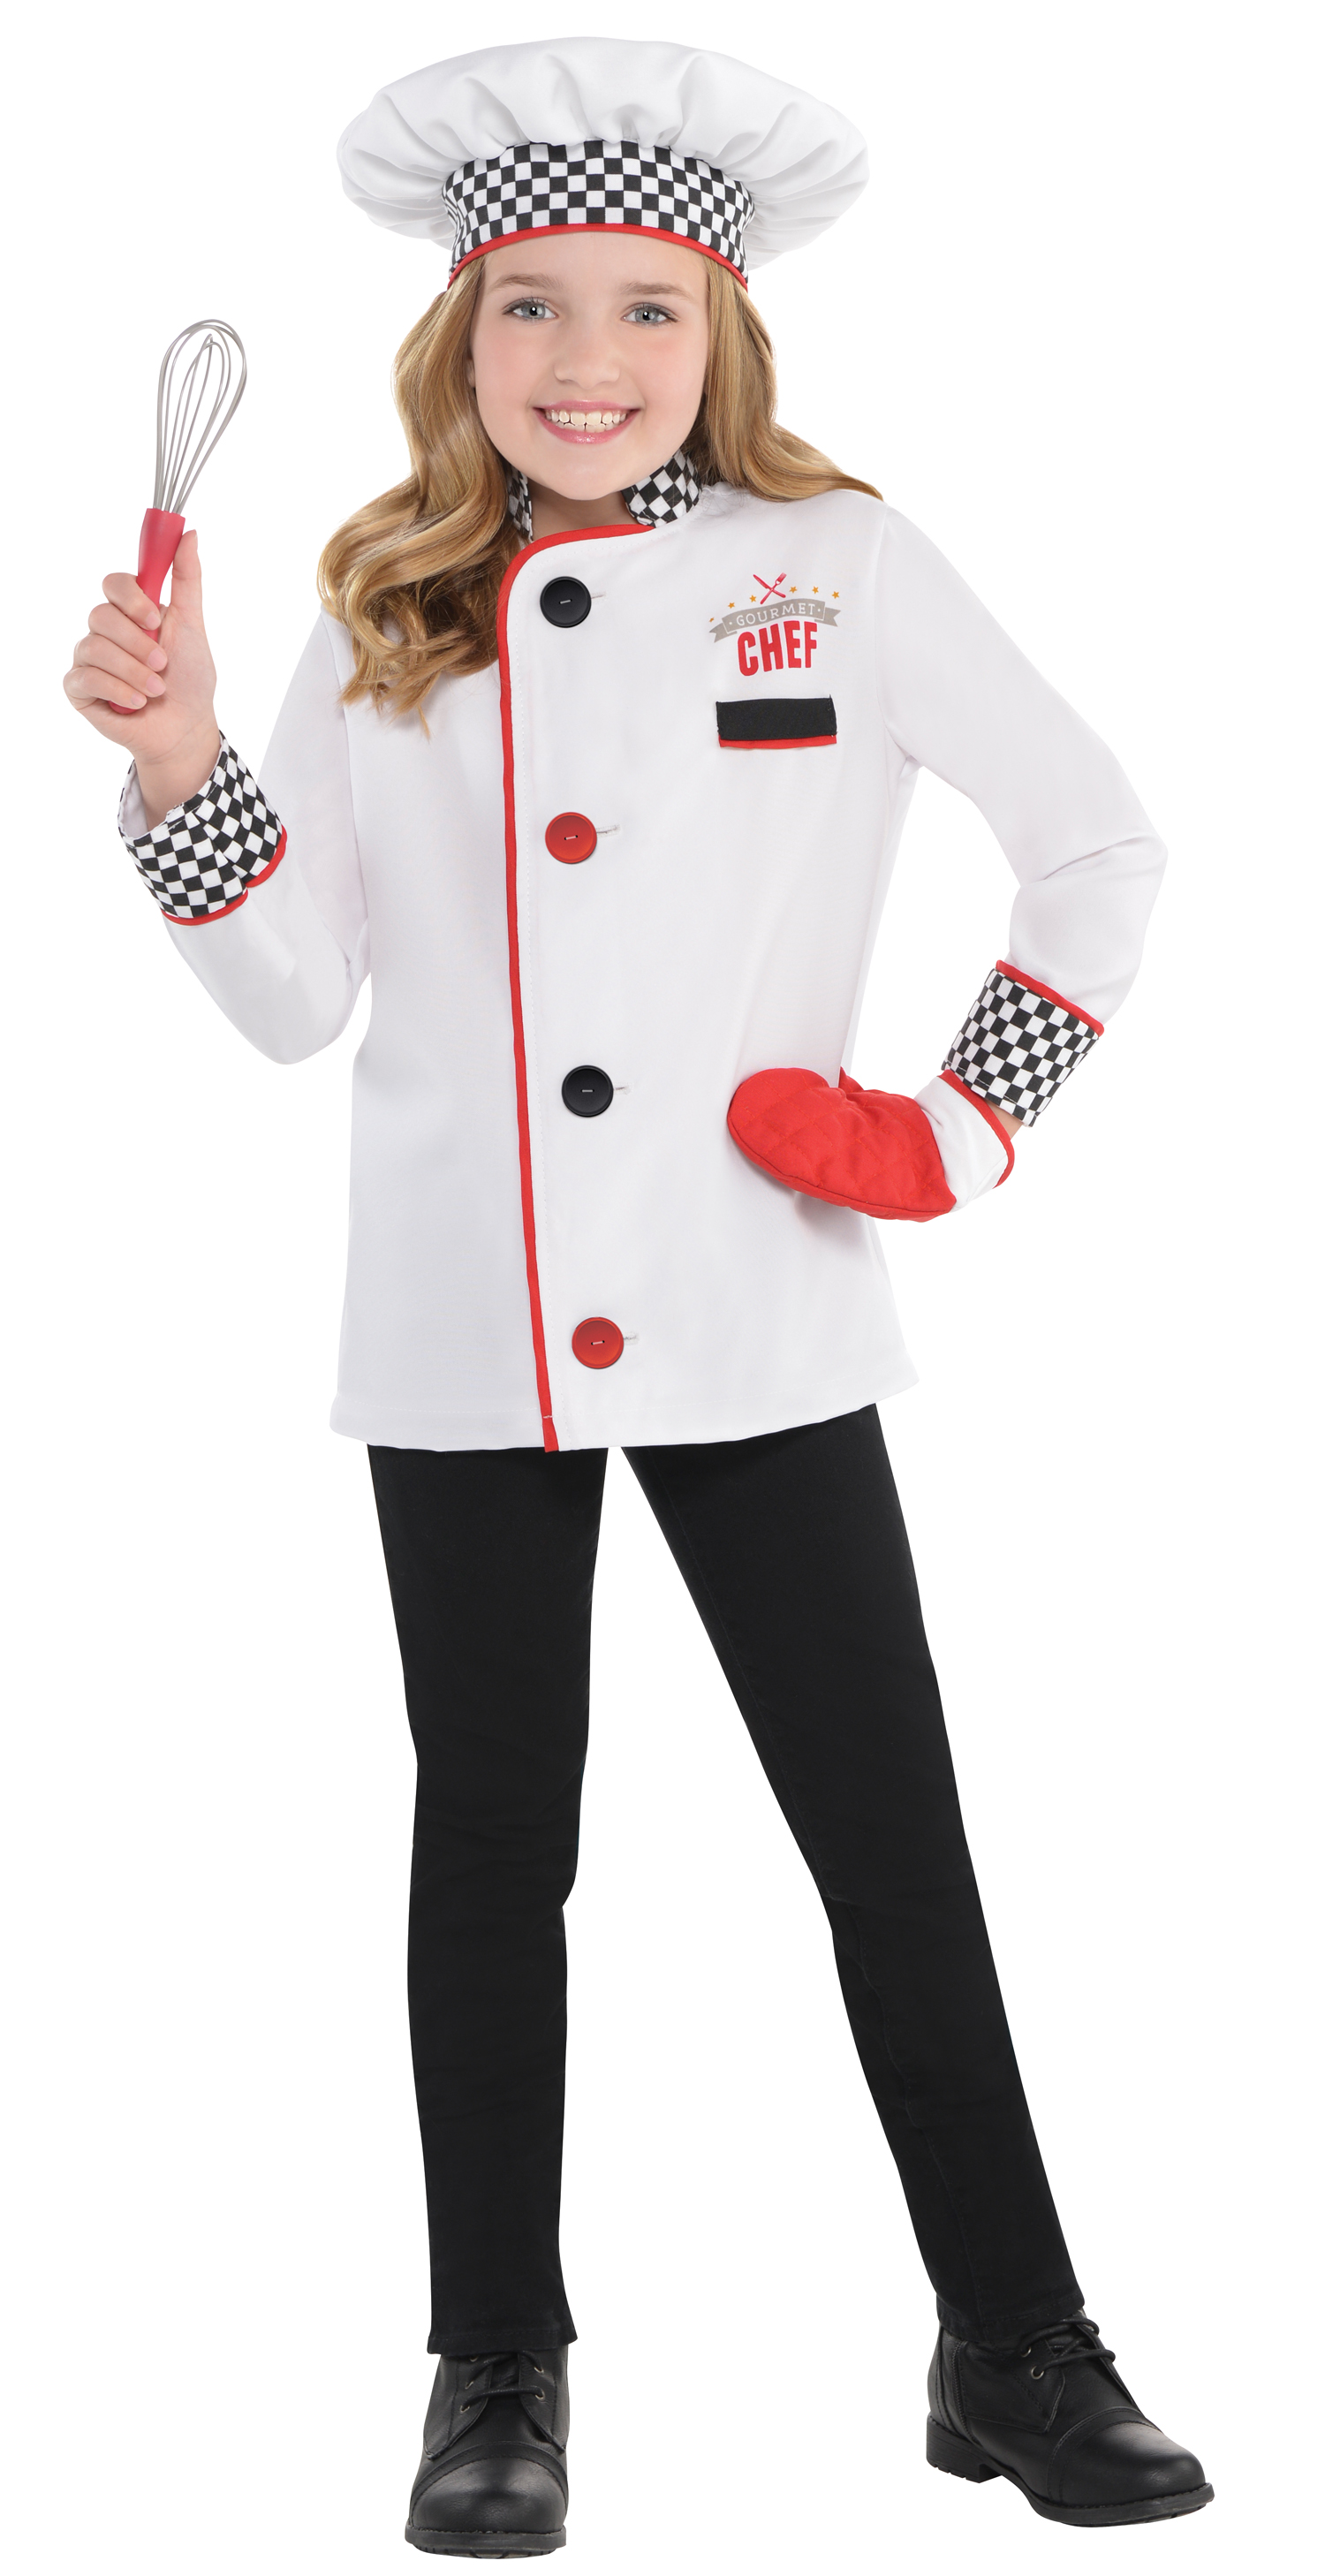 ... sentinel roleplay s fancy dress book day week occupation uniform childs kids costume ...  sc 1 st  Best Kids Costumes & Chef Costume For Kids - Best Kids Costumes